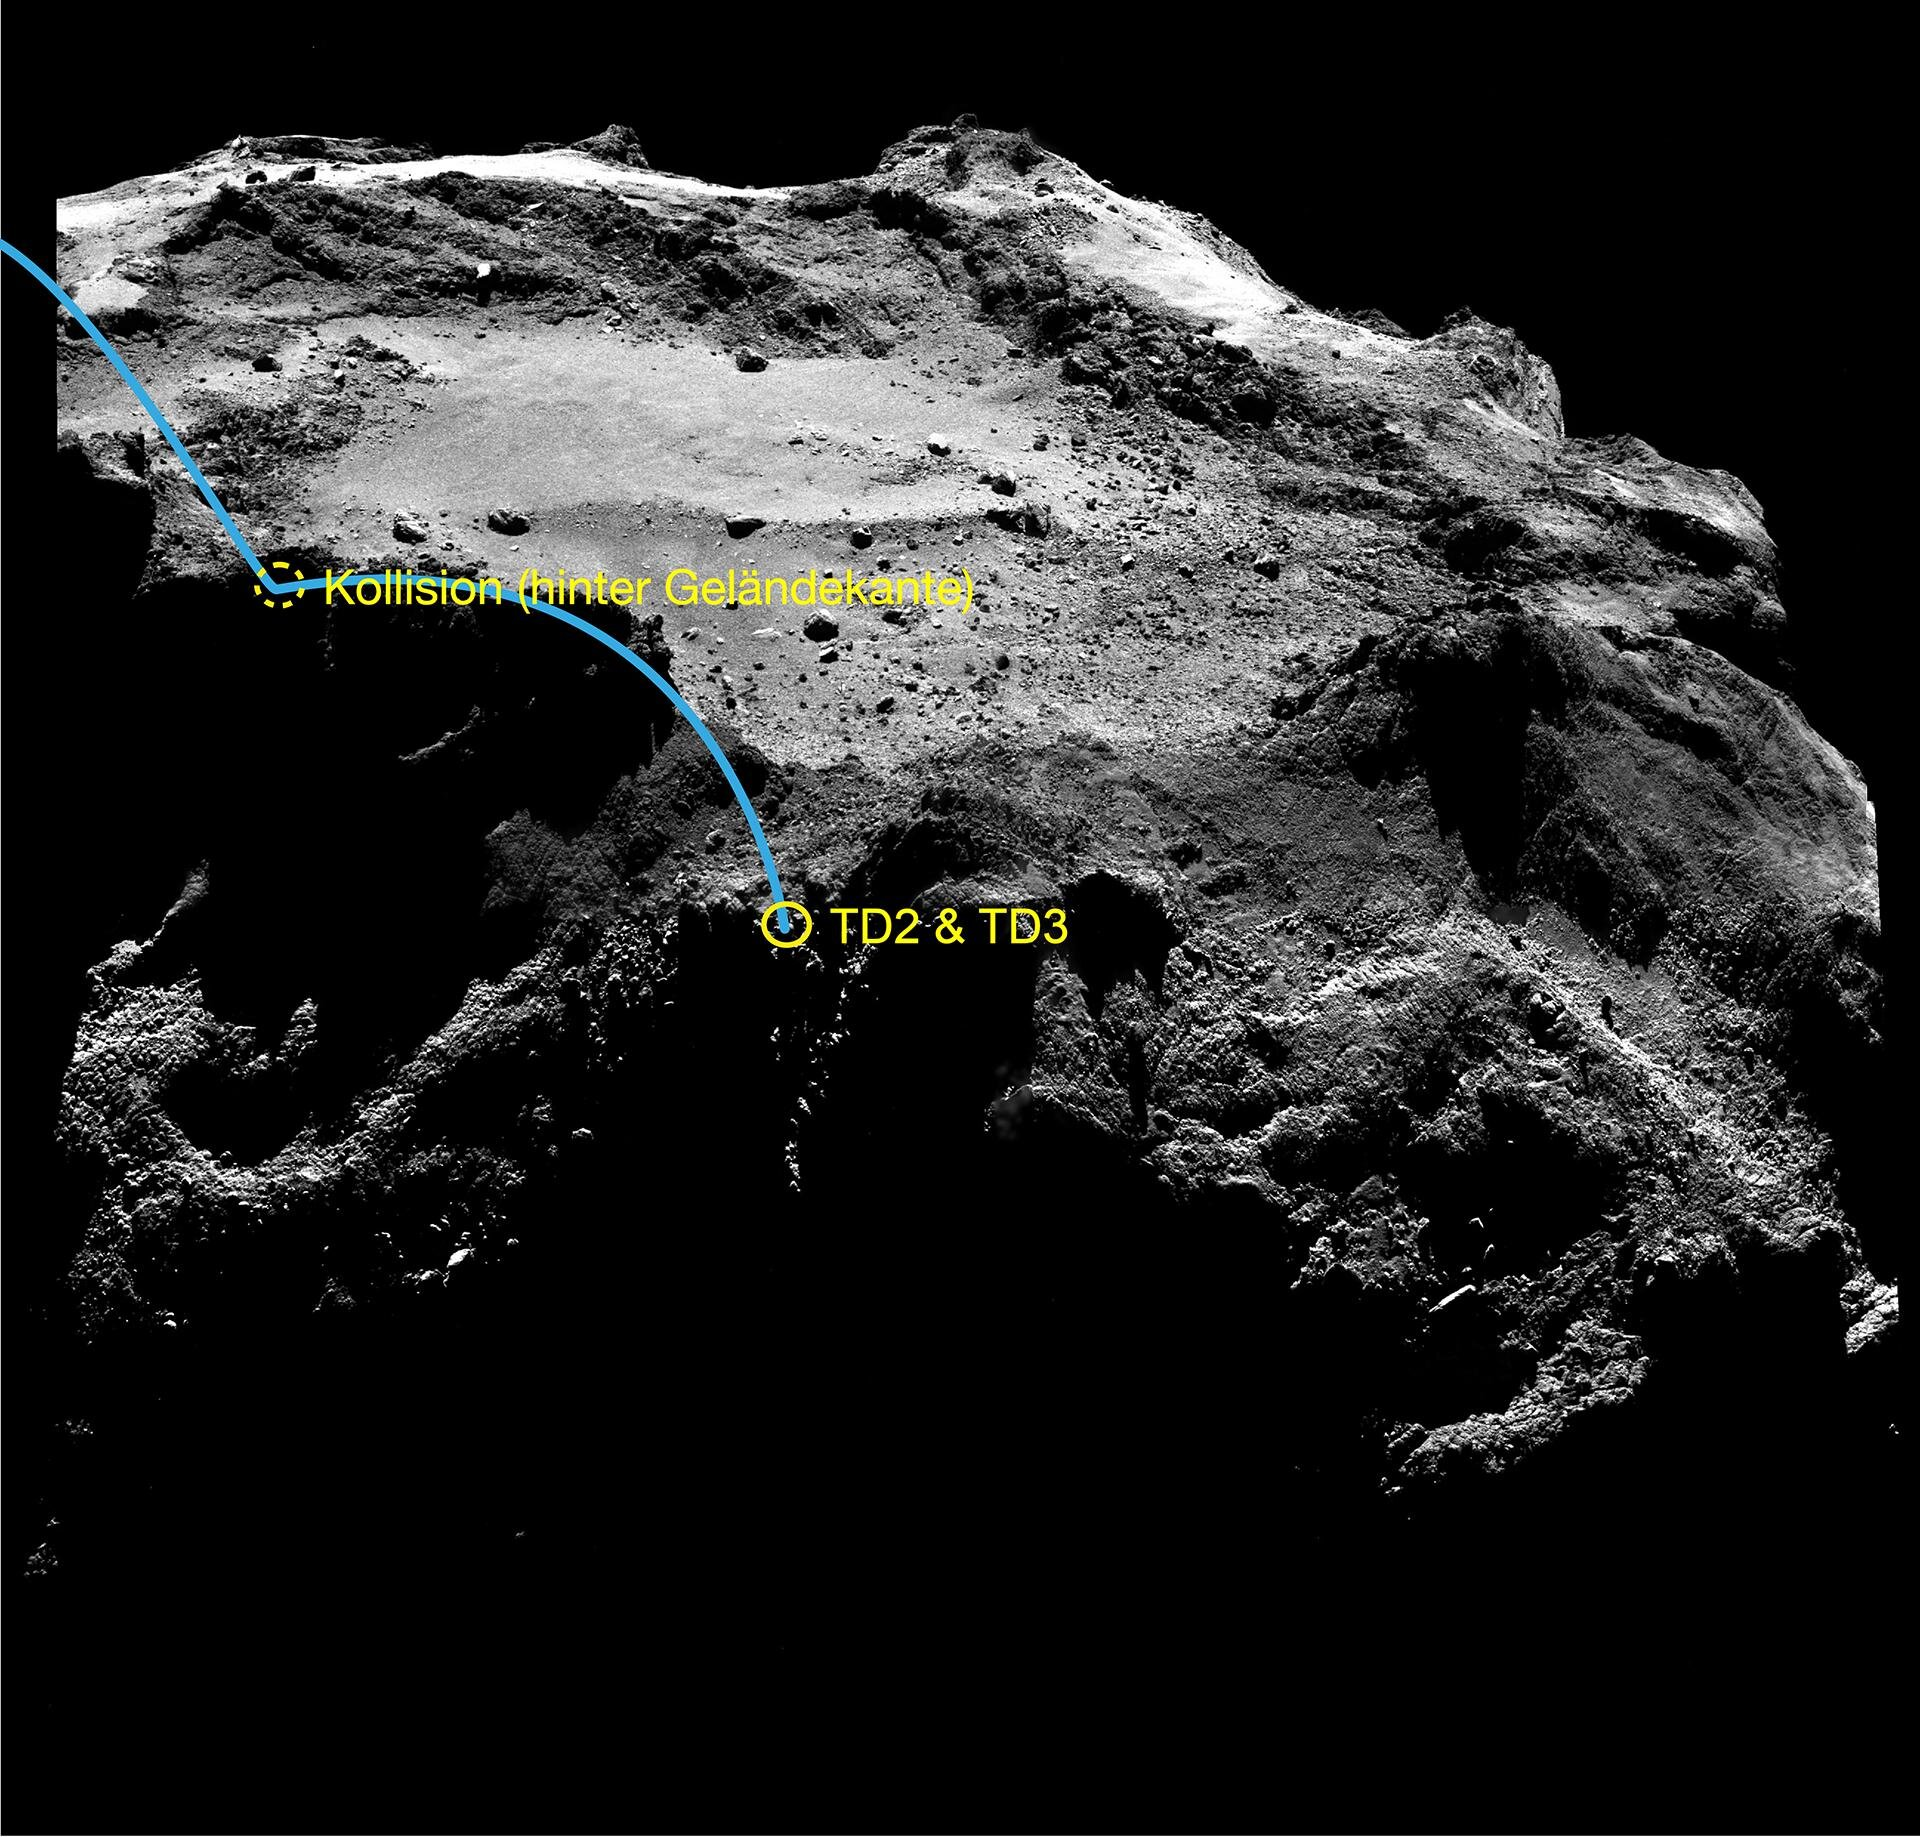 4.5-billion-year-old ice on comet 'fluffier than cappuccino froth'